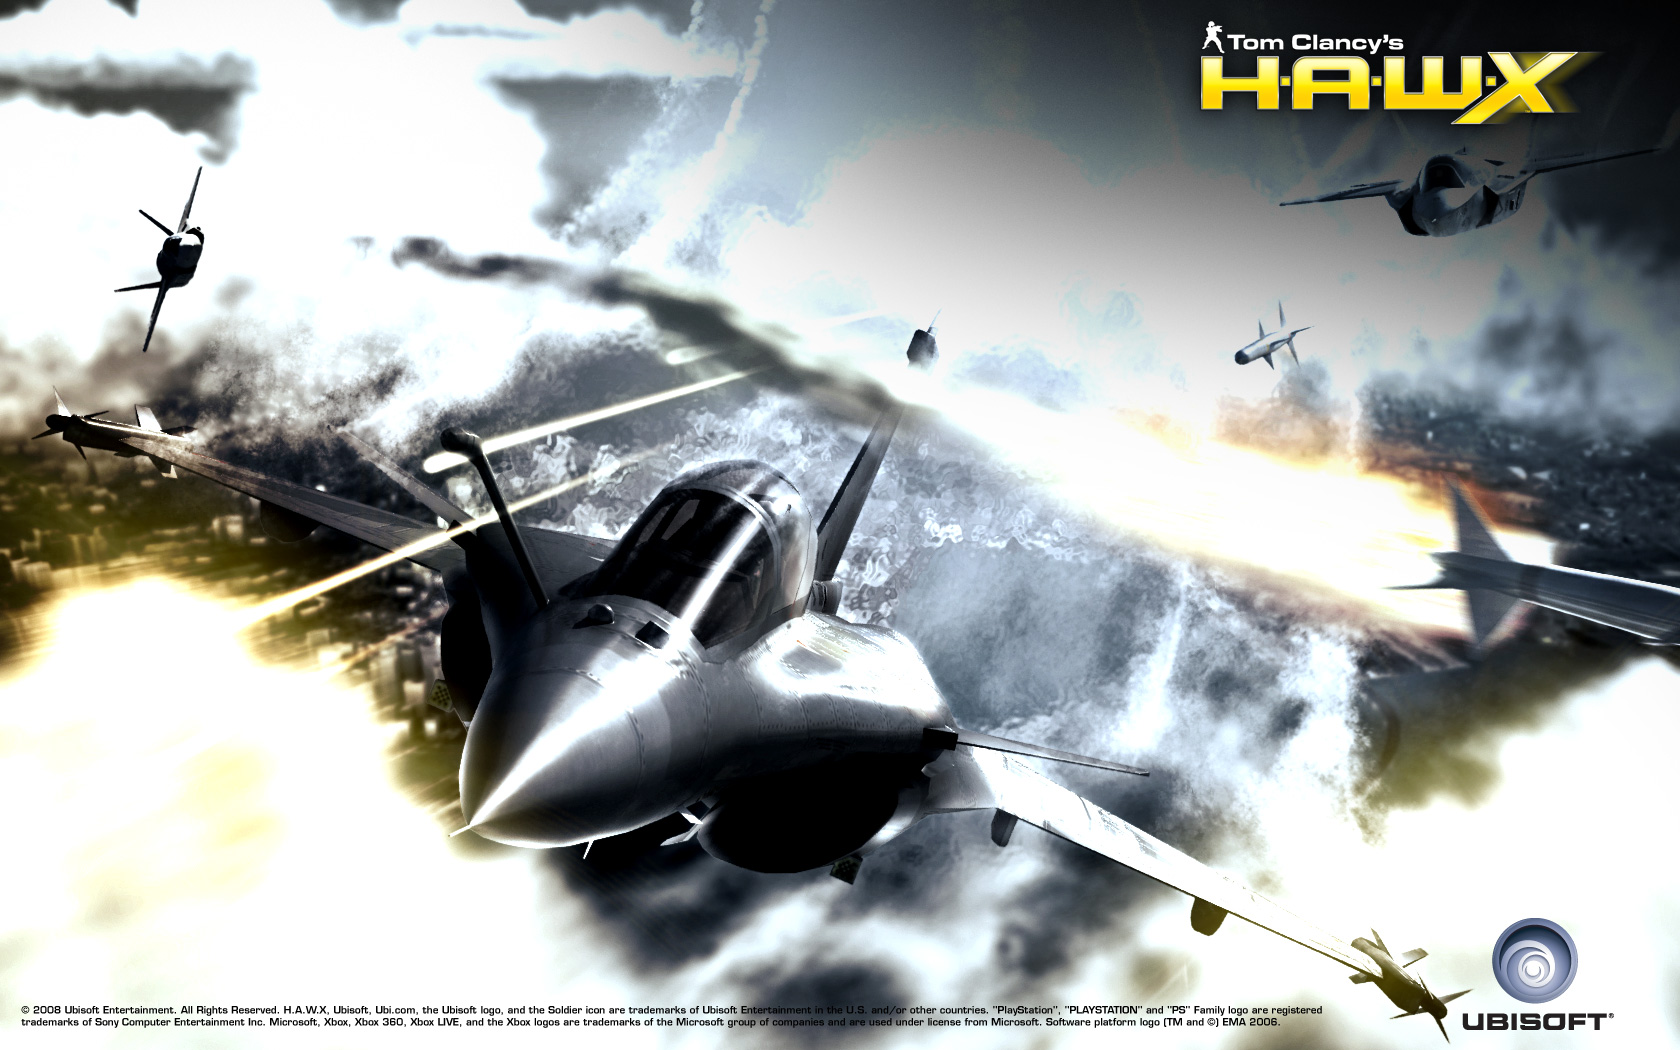 1680x1050 - Tom Clancy's H.A.W.X HD Wallpapers 38